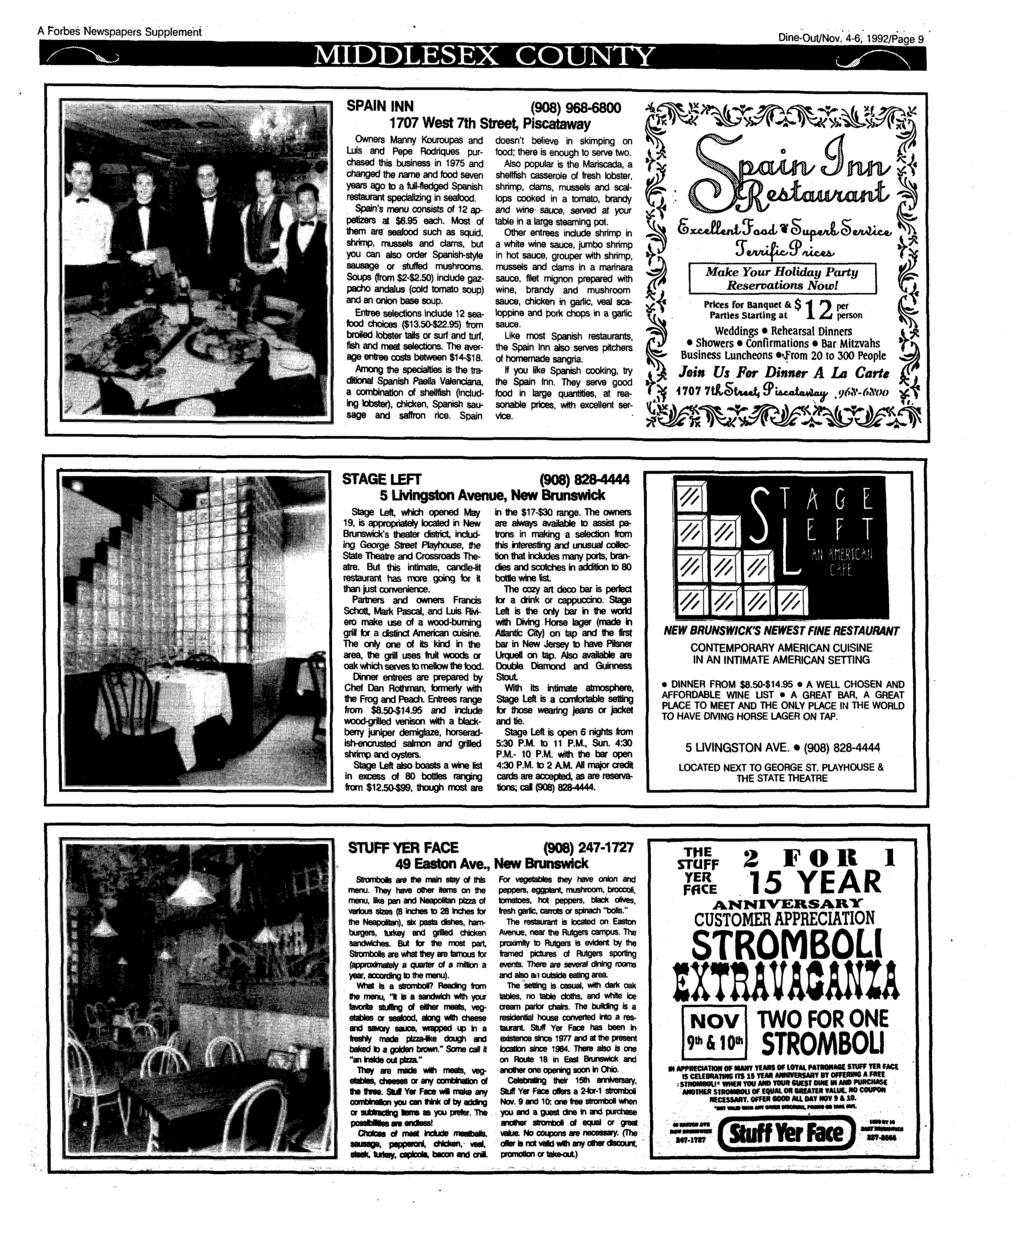 A Forbes Newspapers Supplement MIDDLESEX COUNTY Dine-Out/Nov.